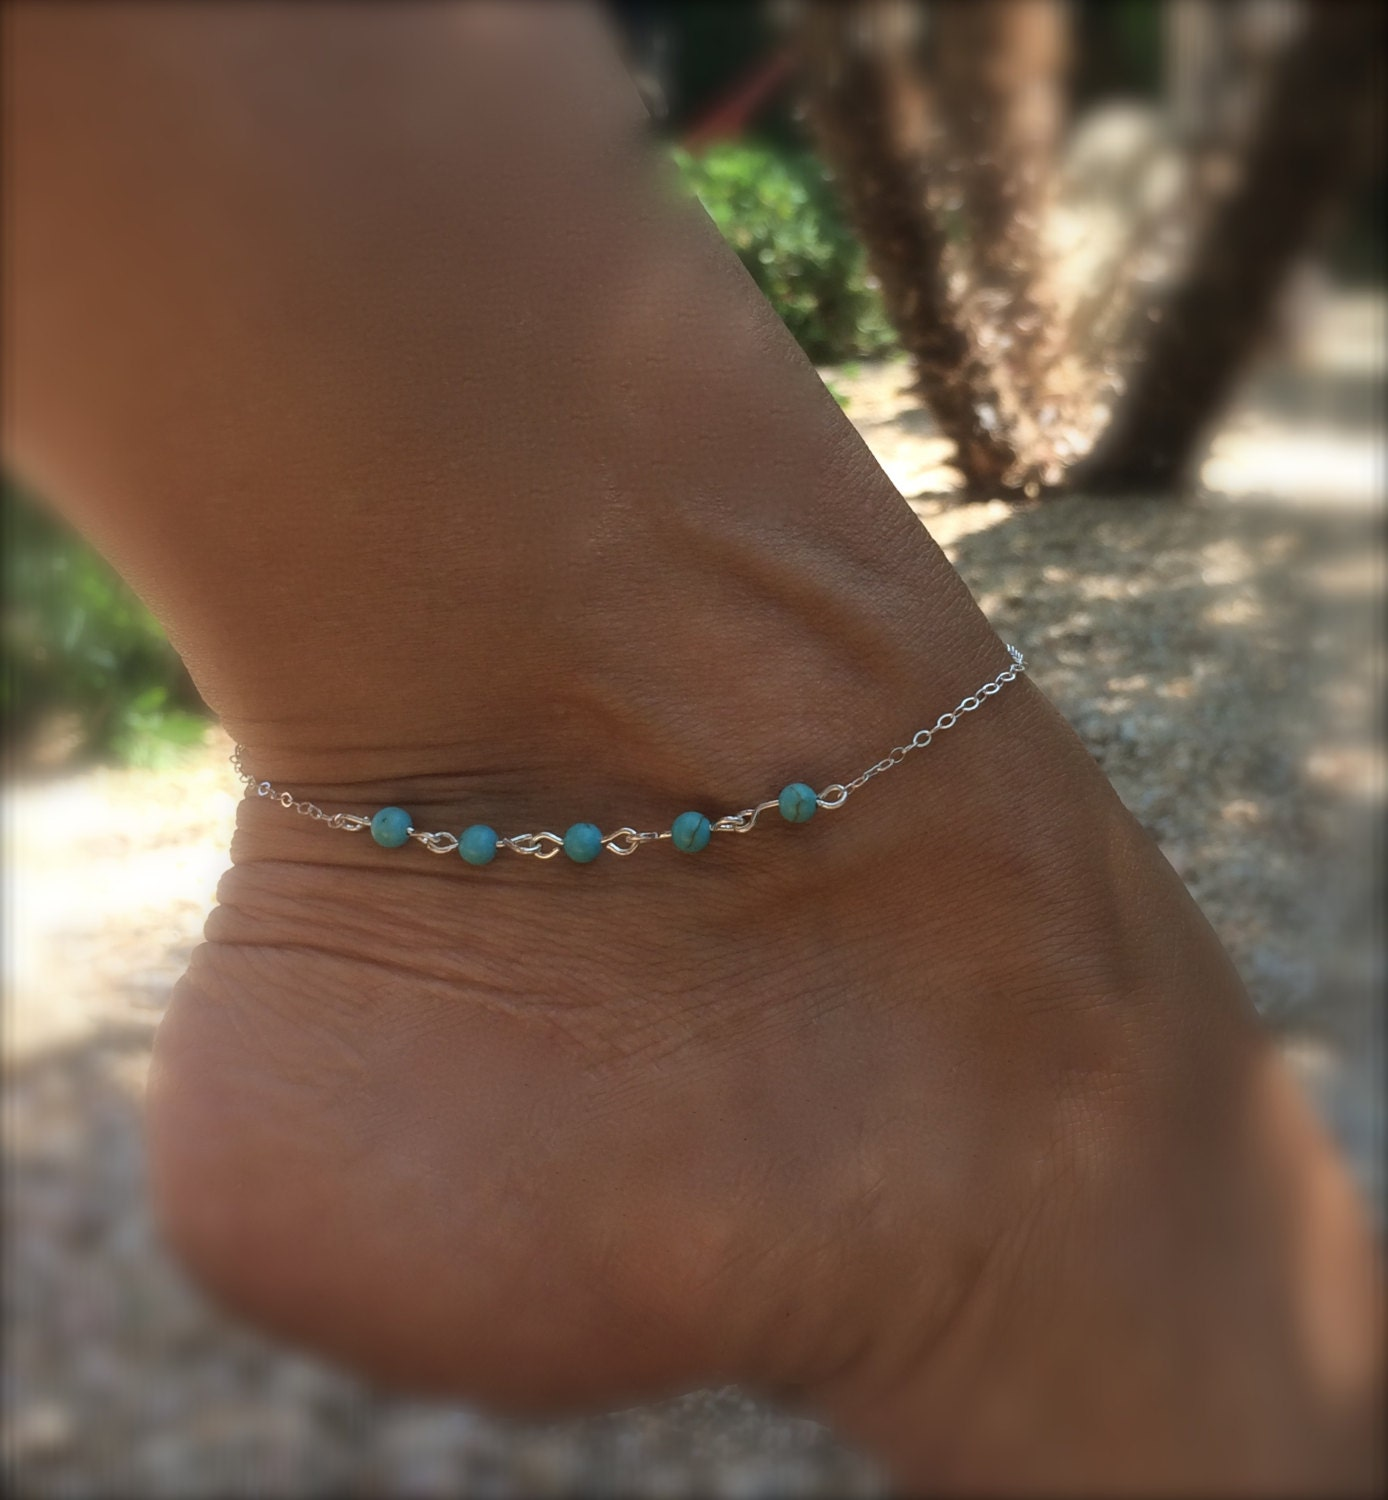 heavenly boho jewelry anklet indian beach sandals wedding bride bridal pin barefoot silver